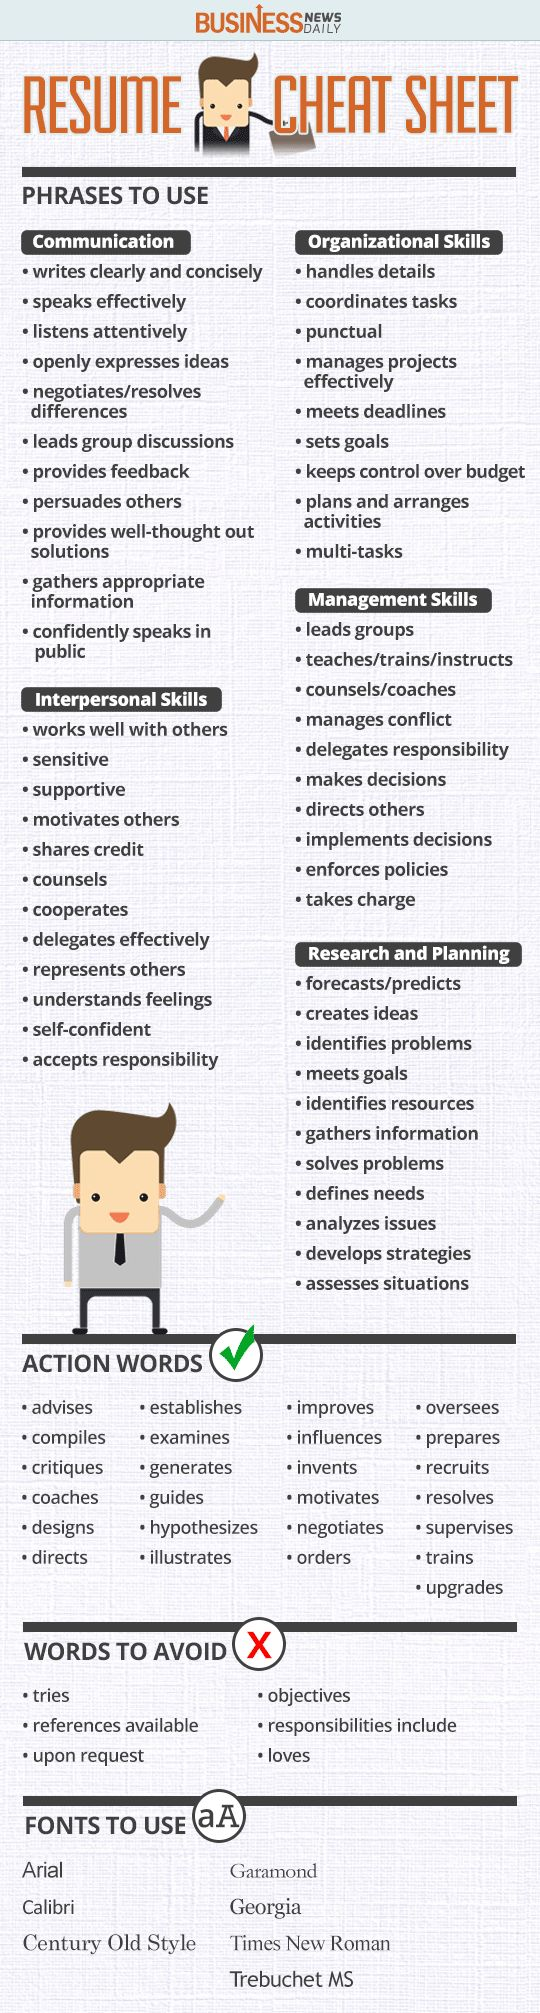 Opposenewapstandardsus  Sweet  Ideas About Resume On Pinterest  Cv Format Resume Cv And  With Interesting Resume Cheat Sheet Infographic Andrews Almost Done With A Complete Unit On Employment Which With Amusing Resume Editing Service Also Objective Samples For Resumes In Addition Chaplain Resume And Human Resources Specialist Resume As Well As Resume Follow Up Letter Additionally Consulting Resume Example From Pinterestcom With Opposenewapstandardsus  Interesting  Ideas About Resume On Pinterest  Cv Format Resume Cv And  With Amusing Resume Cheat Sheet Infographic Andrews Almost Done With A Complete Unit On Employment Which And Sweet Resume Editing Service Also Objective Samples For Resumes In Addition Chaplain Resume From Pinterestcom